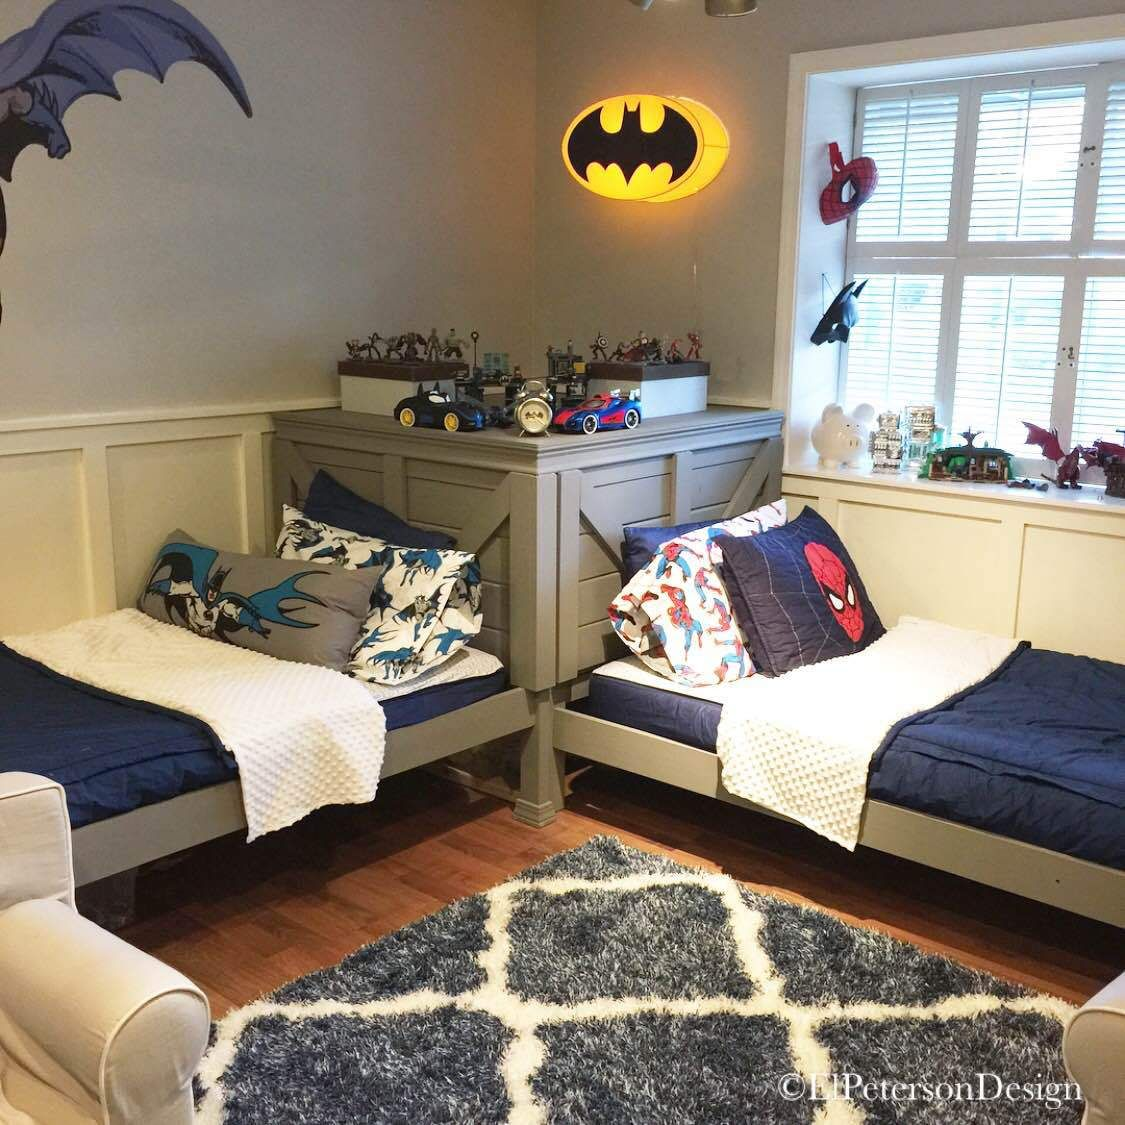 Blog El Peterson Design Boys Room Decor Boys Shared Bedroom